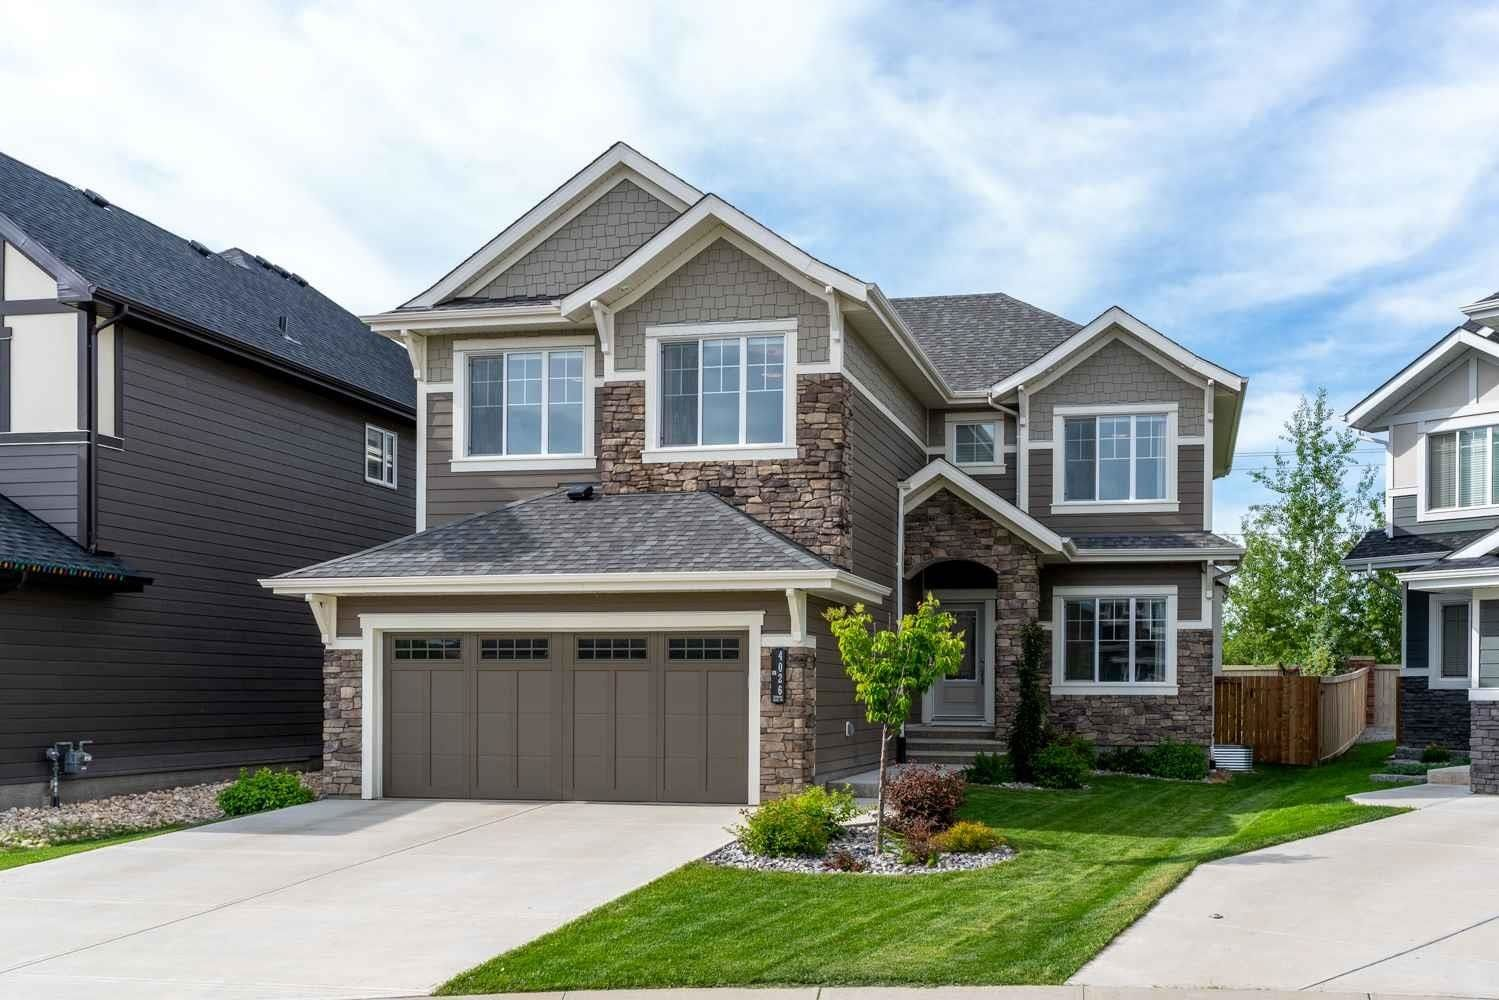 Main Photo: 4026 KENNEDY Close in Edmonton: Zone 56 House for sale : MLS®# E4249532